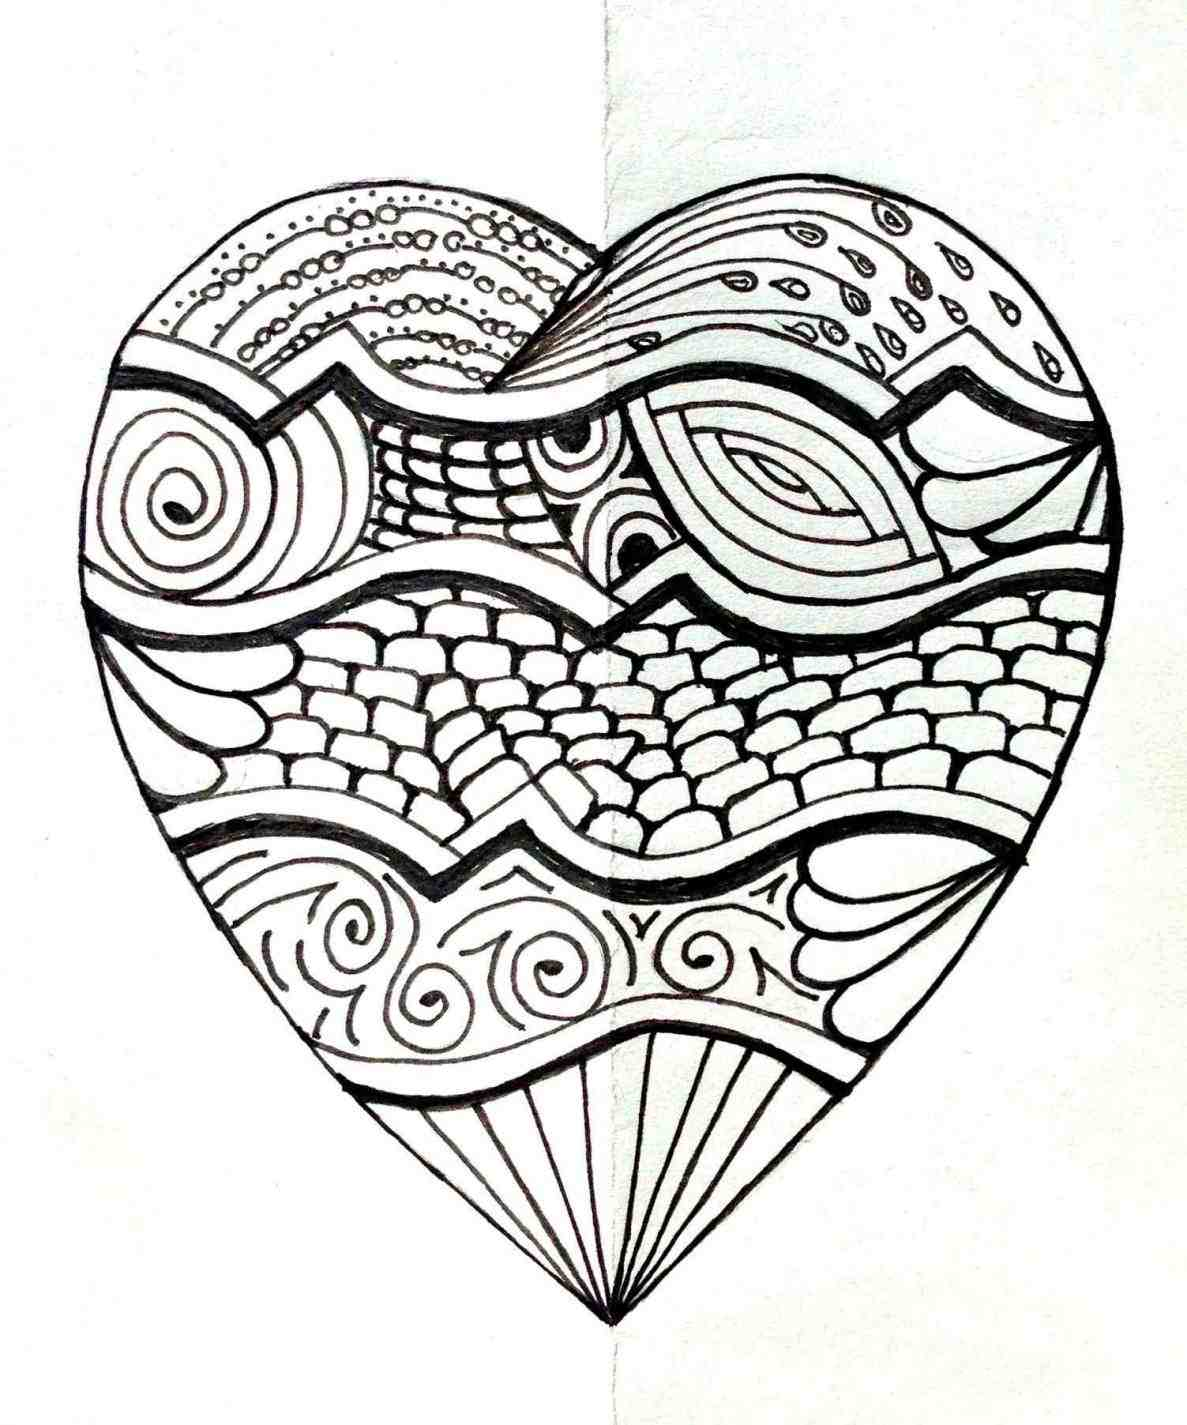 1187x1425 Cool Simple Drawings Of Hearts